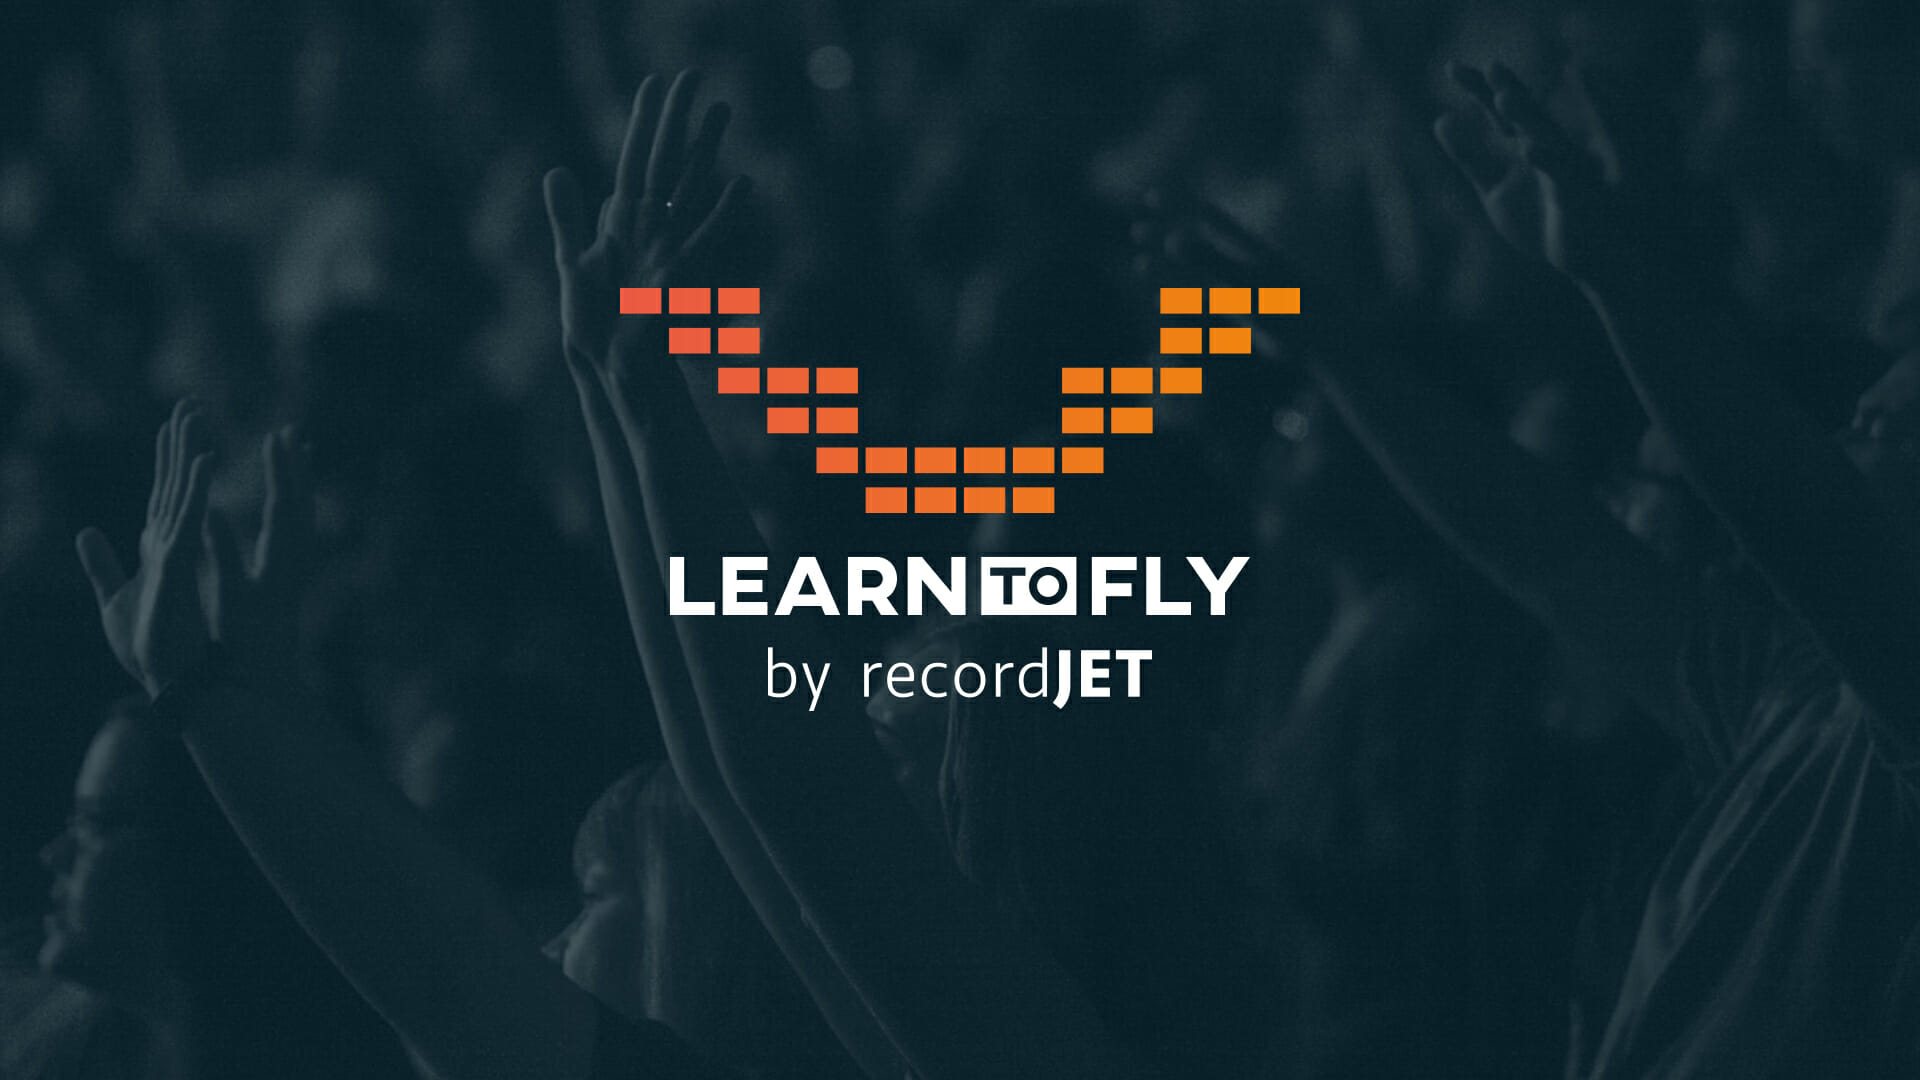 Learn to Fly - by recordJet